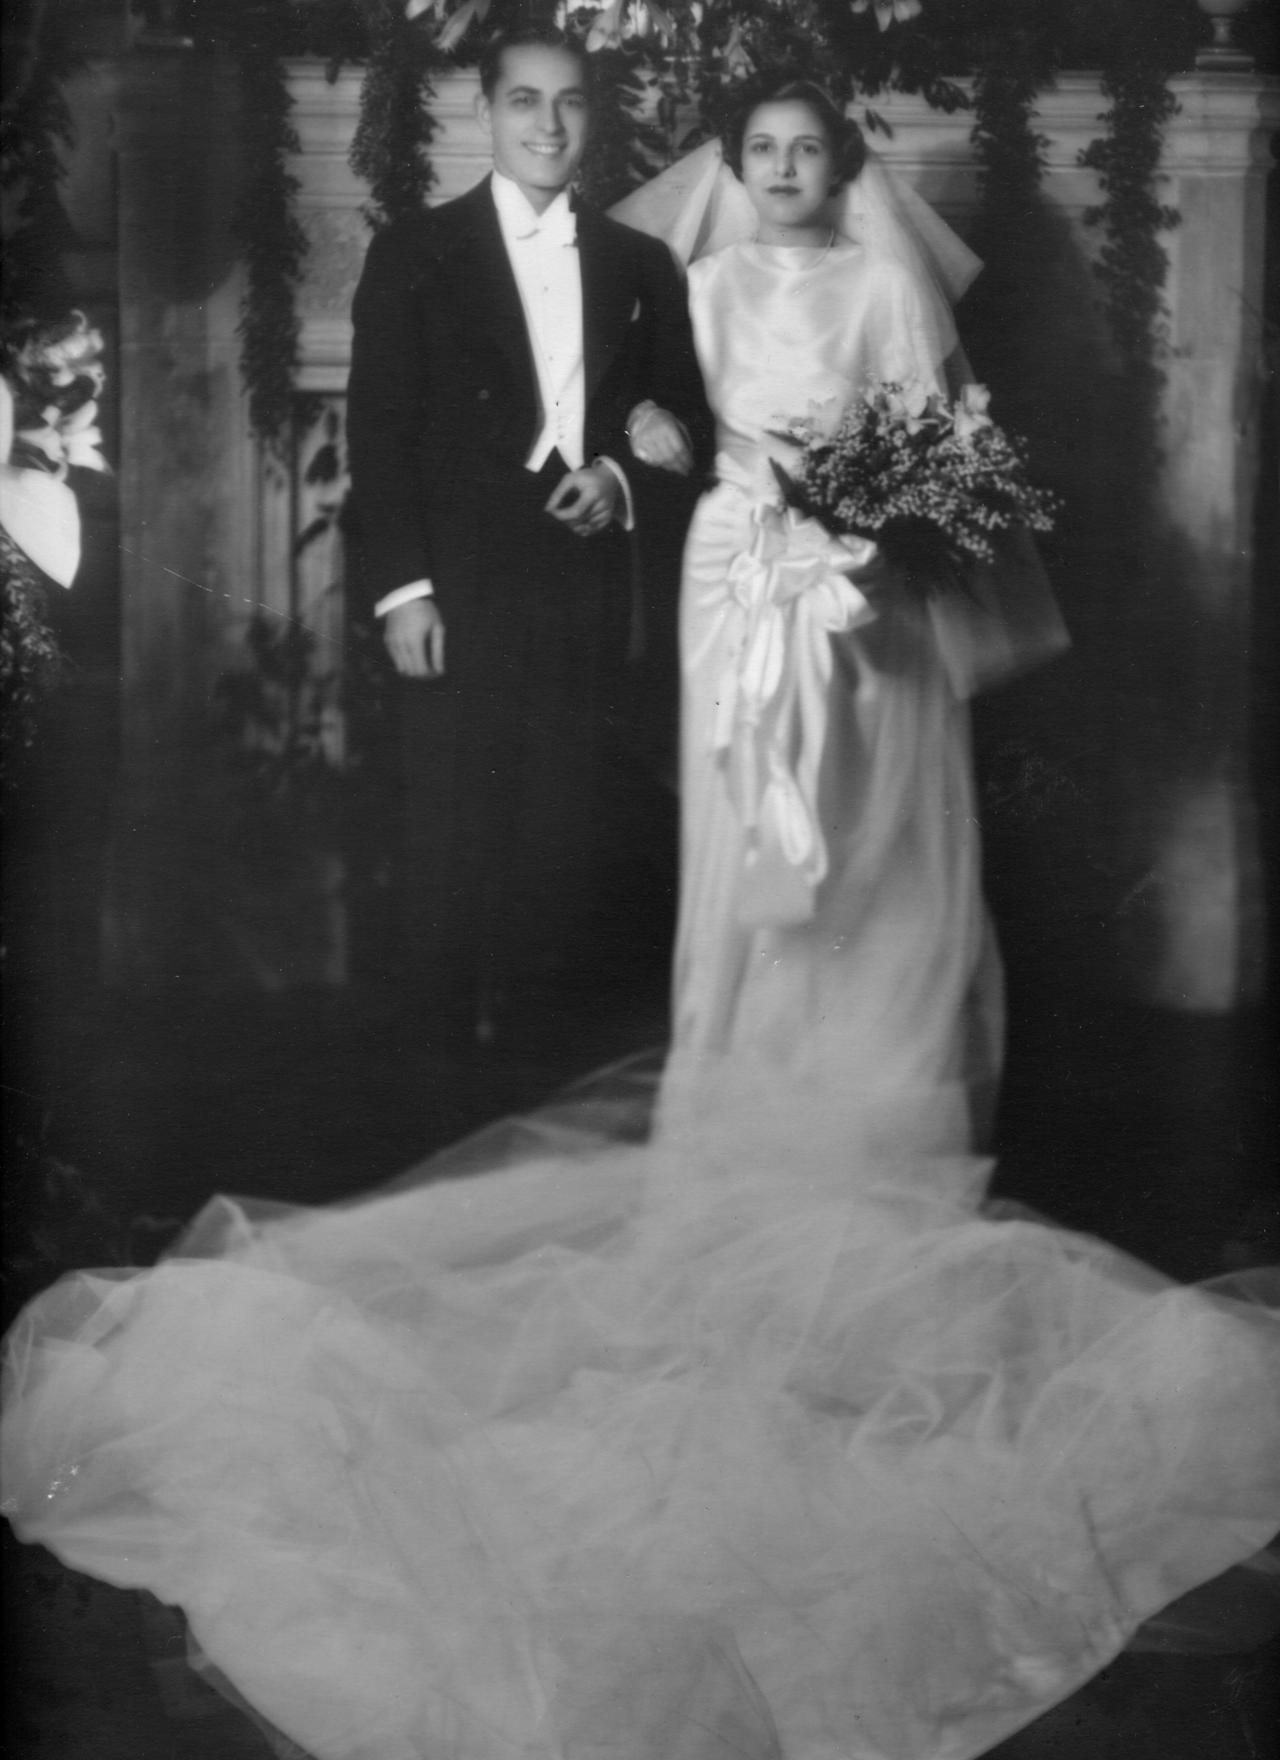 Edna and Paul Barrabee's wedding